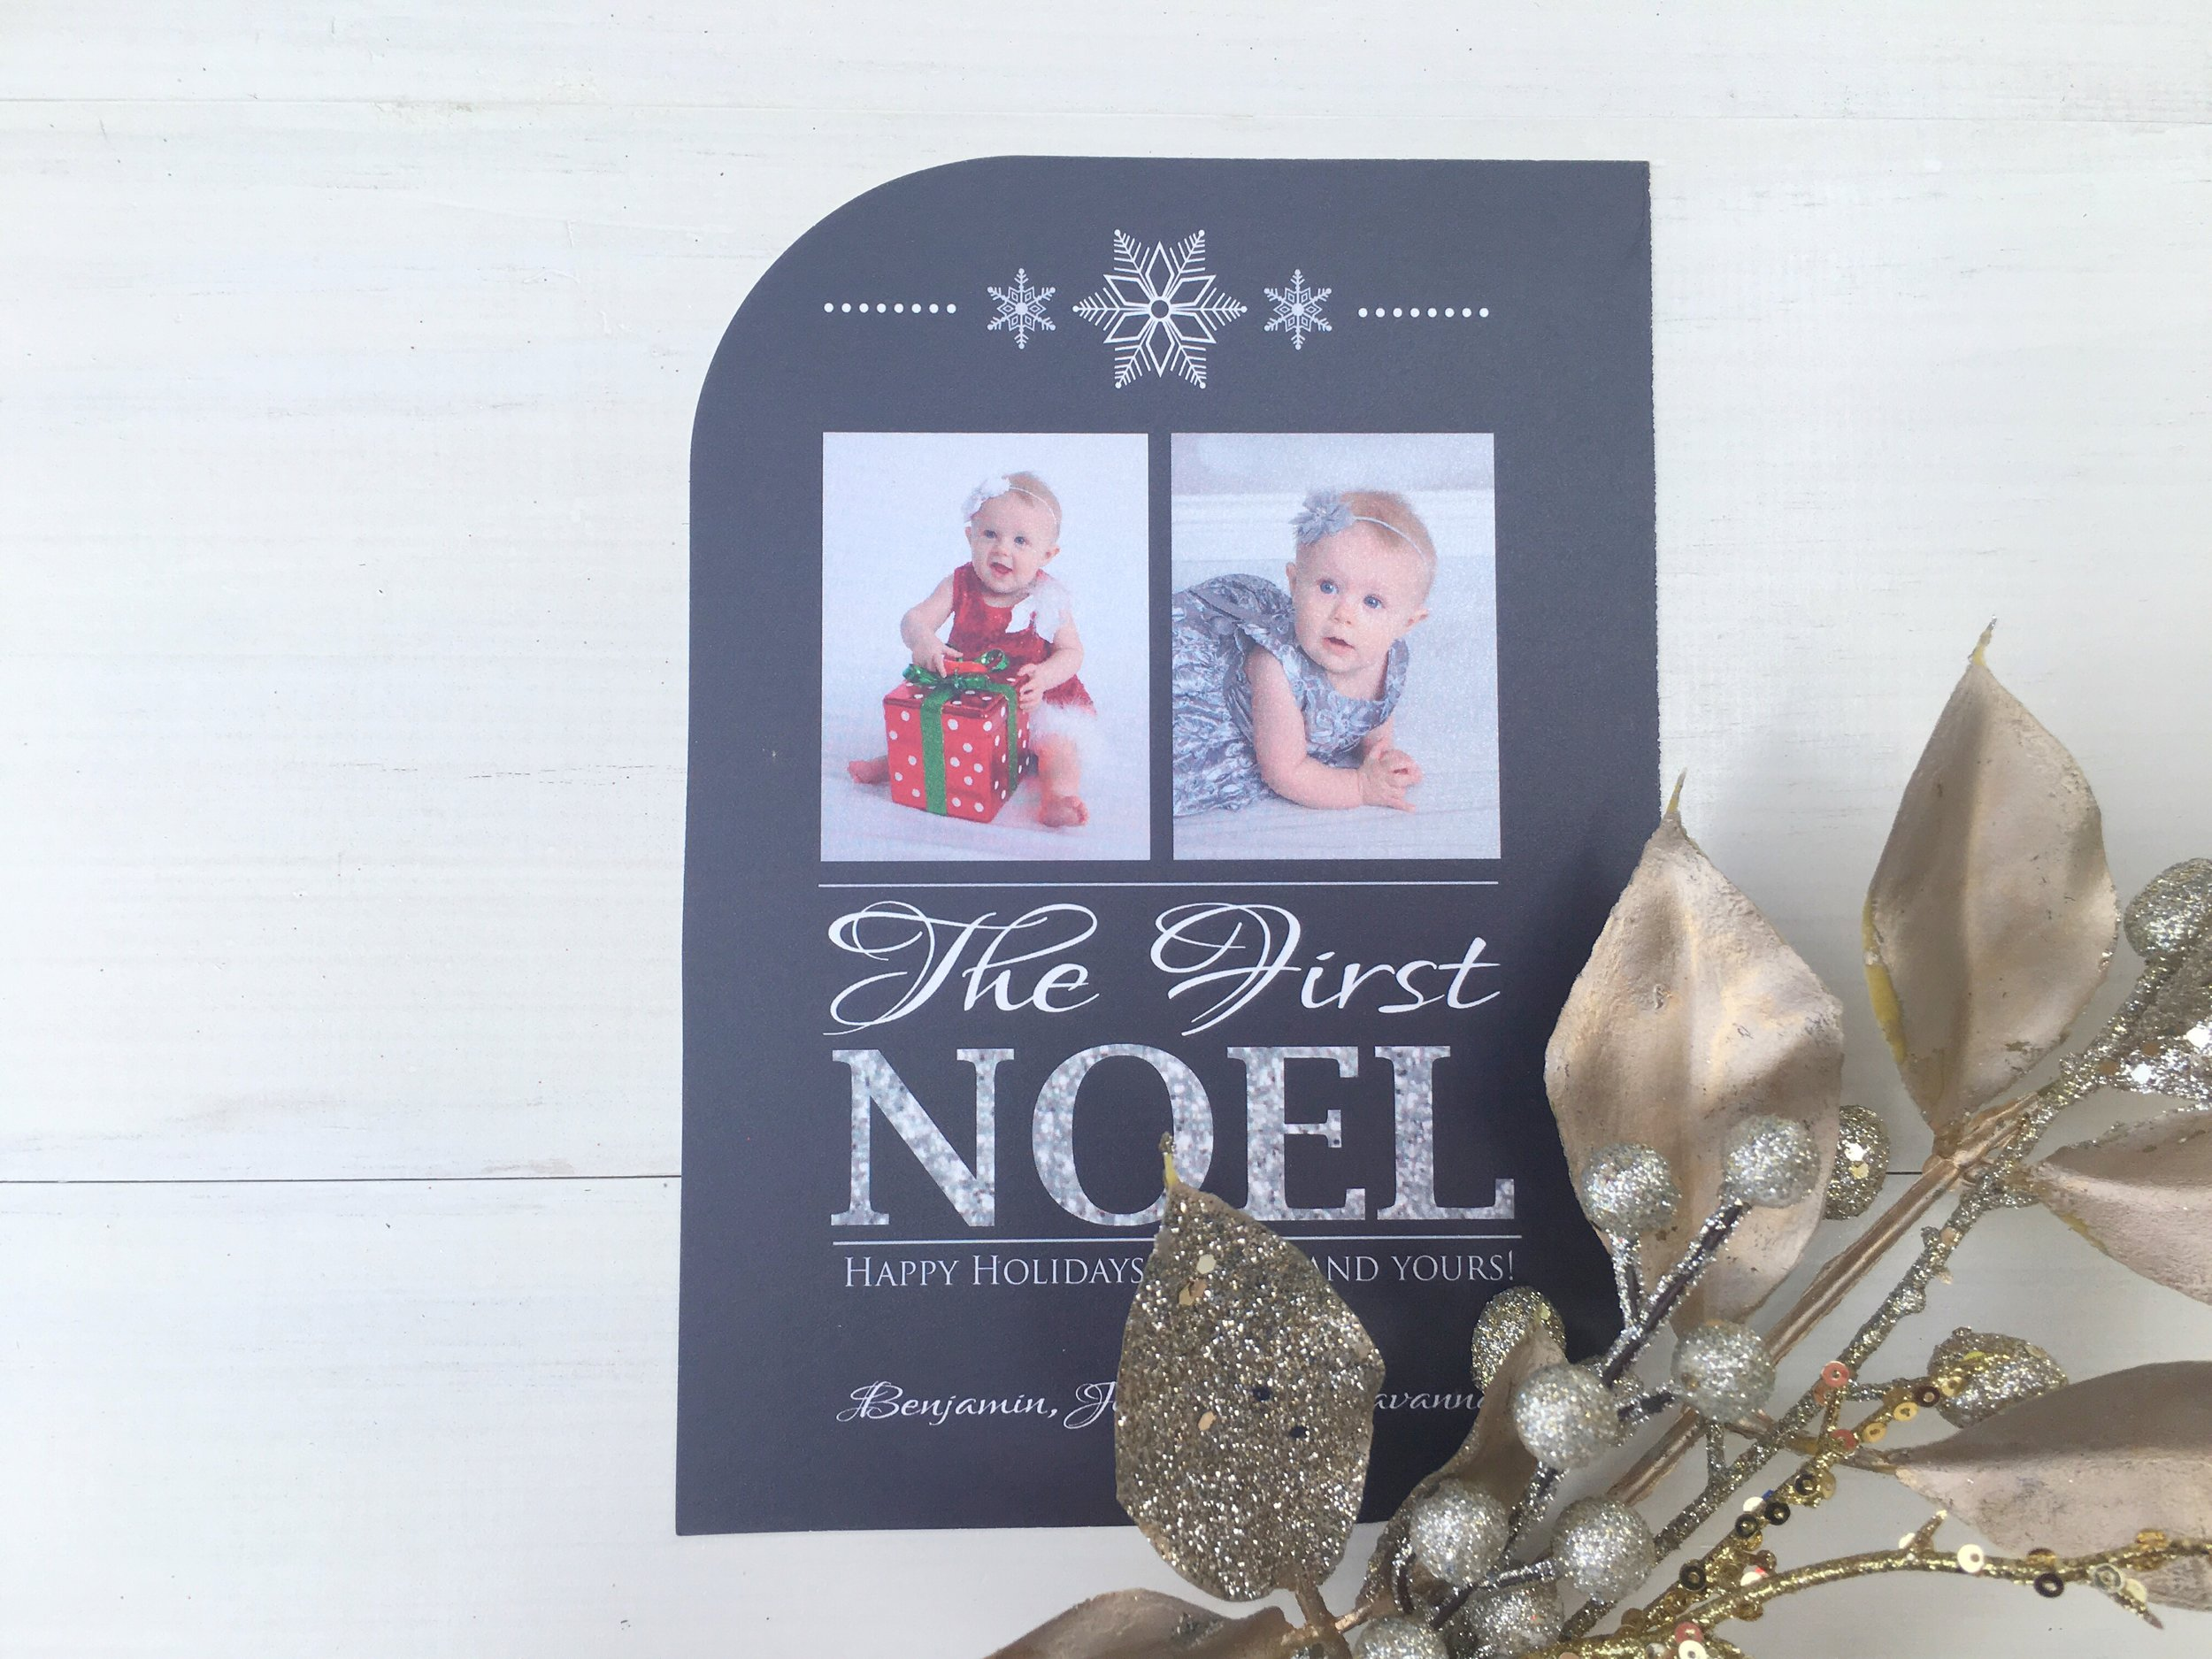 jsd first noel holiday card.jpg